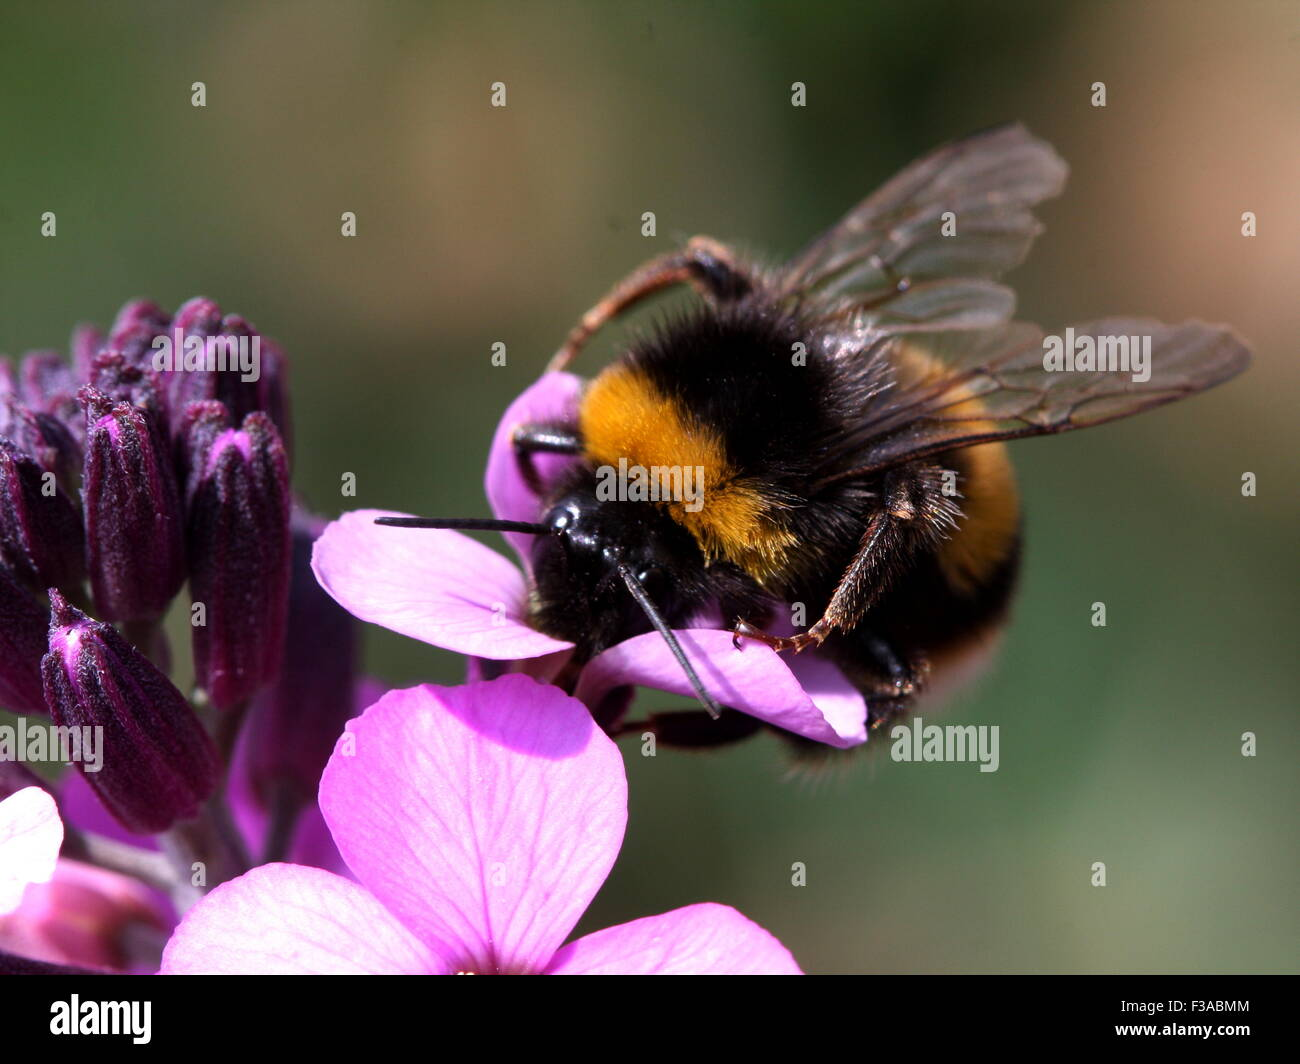 Bumble Bee on flower Stock Photo